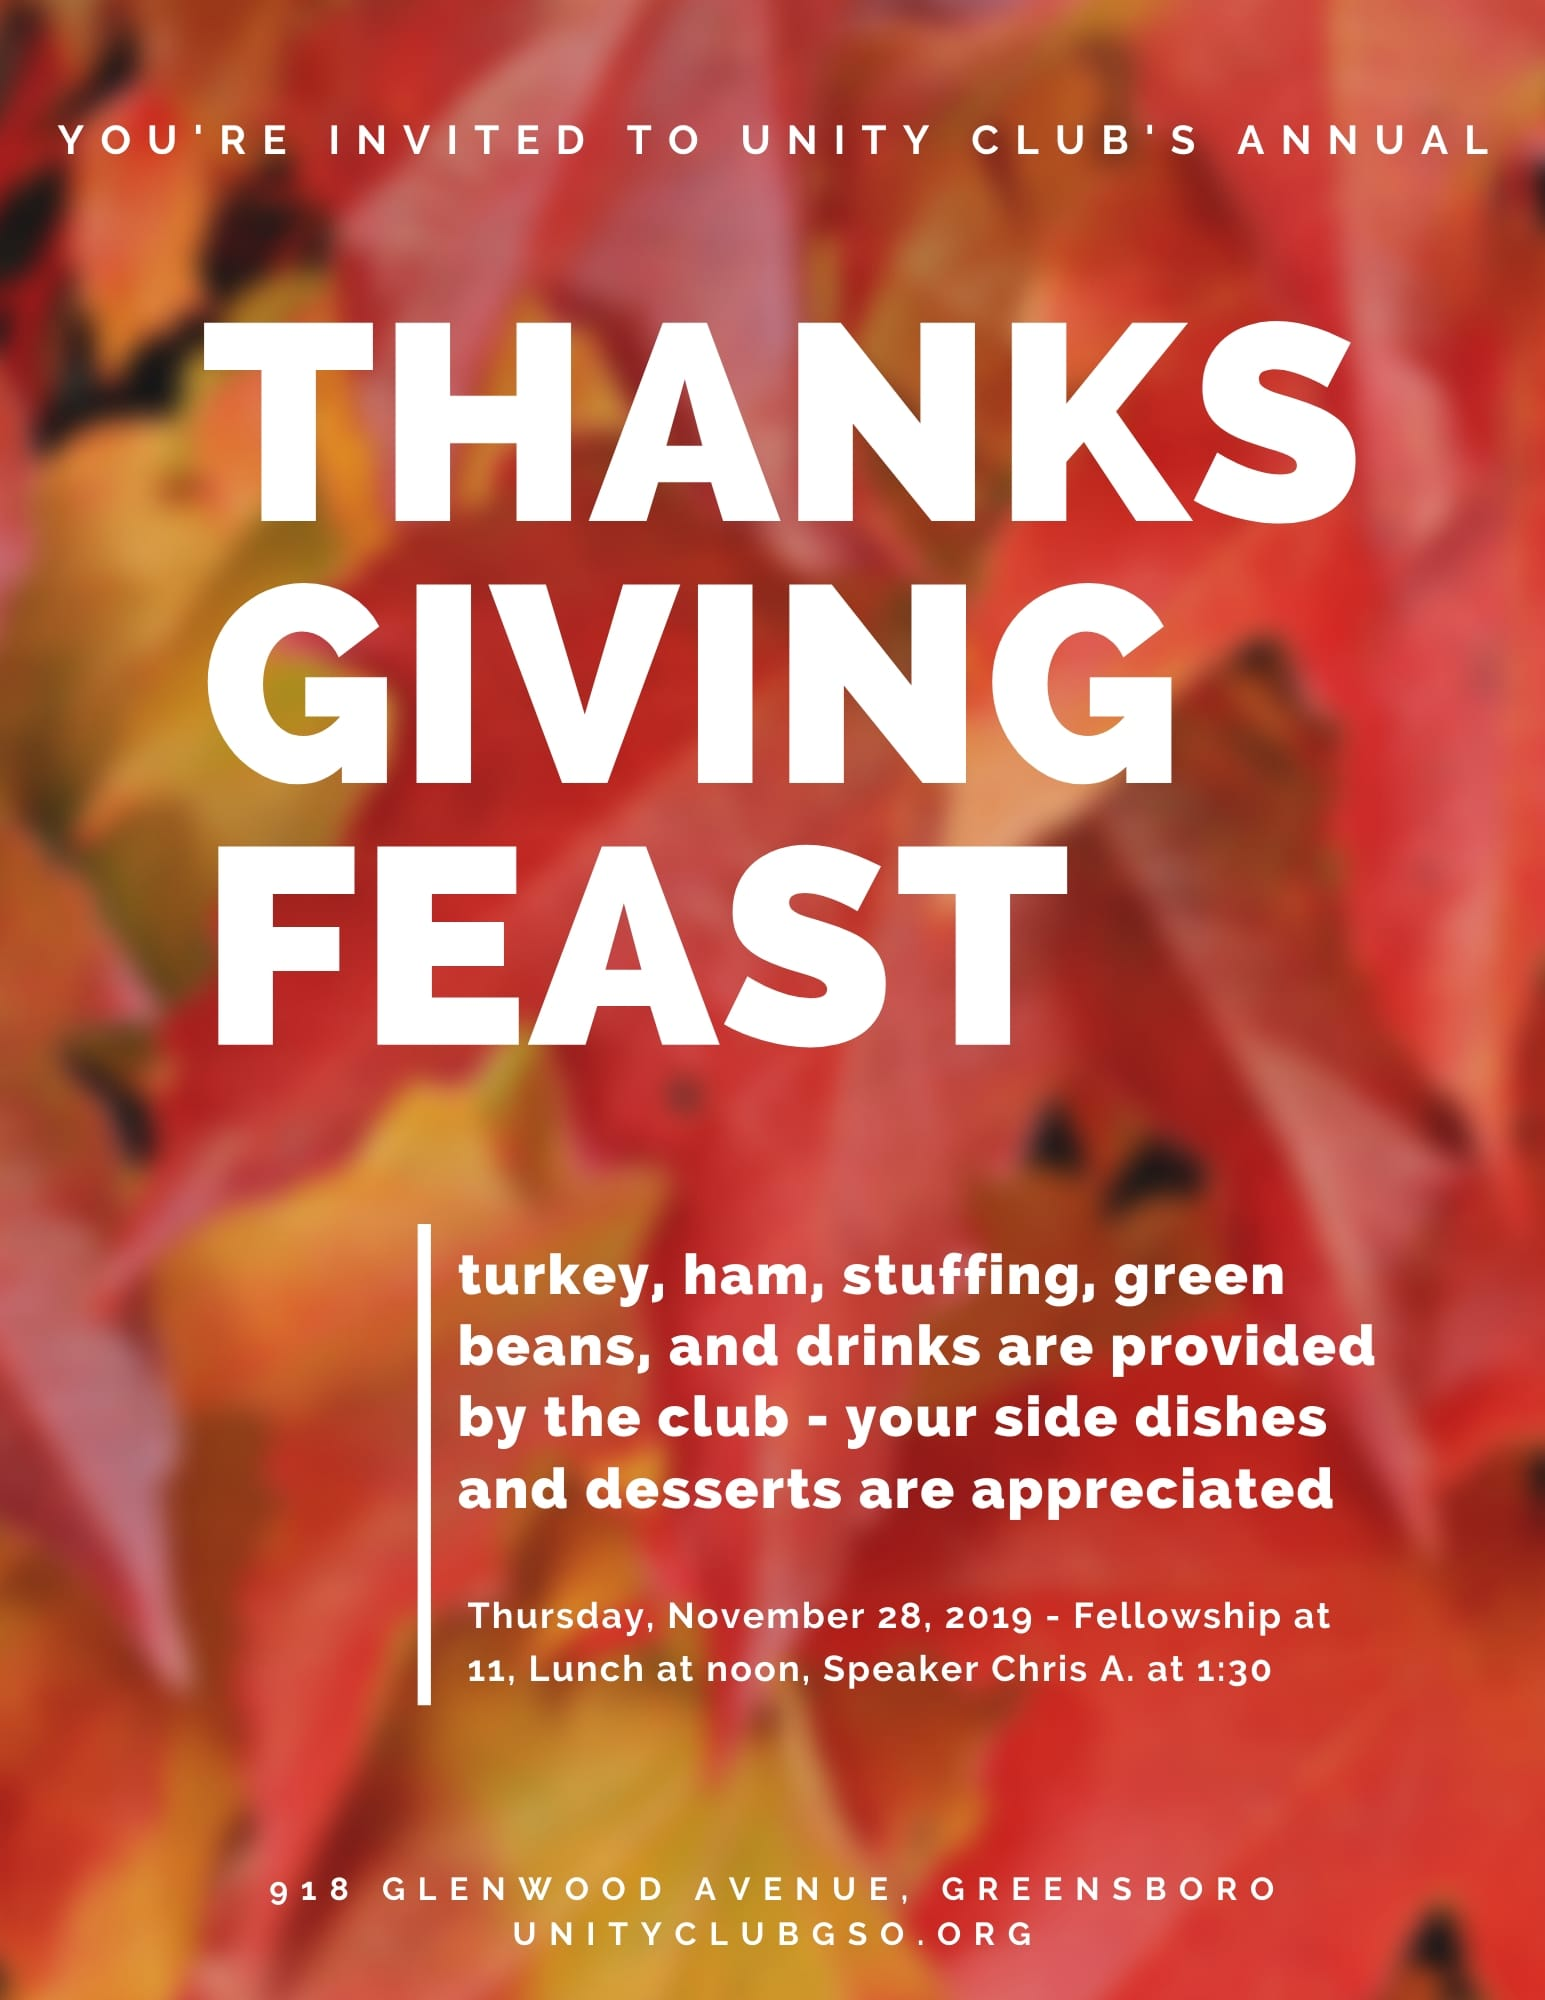 Unity Club's Annual Thanksgiving Feast @ Unity Club | Greensboro | North Carolina | United States